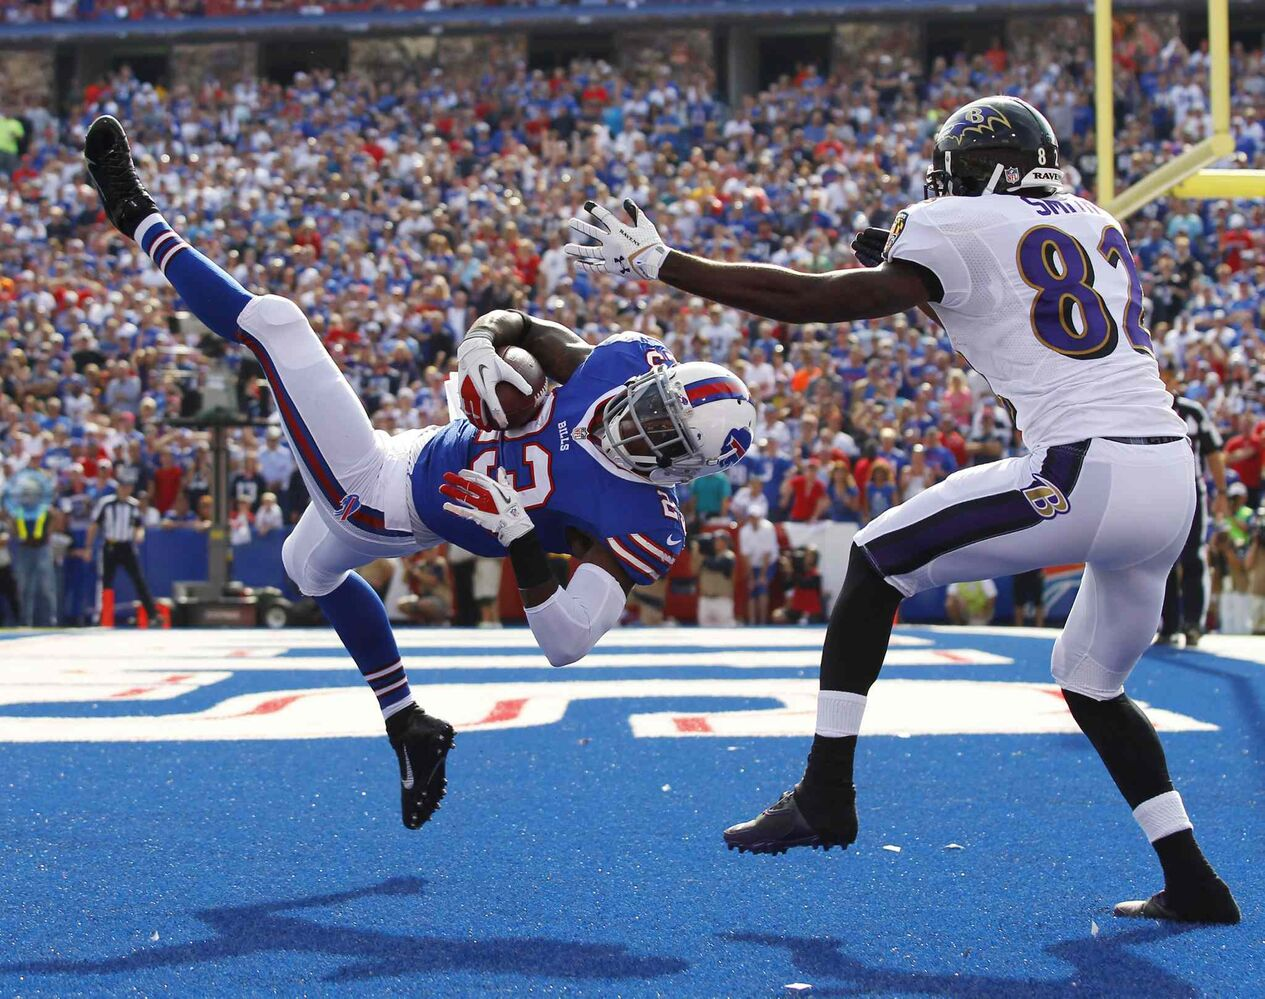 Buffalo Bills safety Aaron Williams (left) intercepts a pass intended for Baltimore Ravens wide receiver Torrey Smith during the Bills 23-20 victory Sunday in Orchard Park, N.Y.